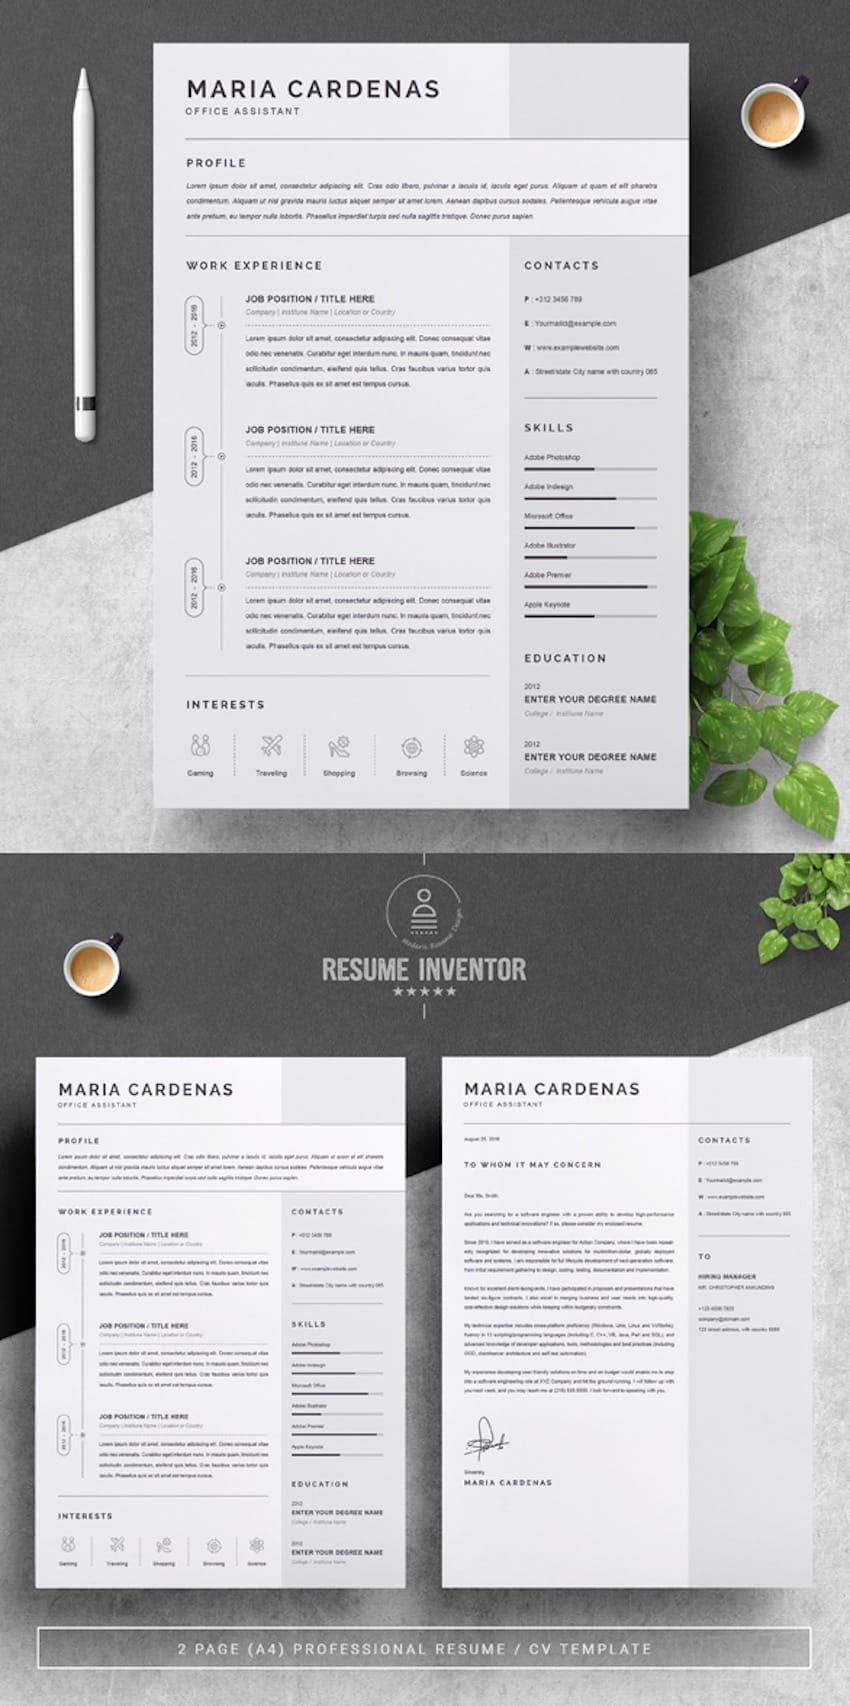 creative dynamic resume cv templates for professional jobs in and en one template Resume Creative And Professional Resume